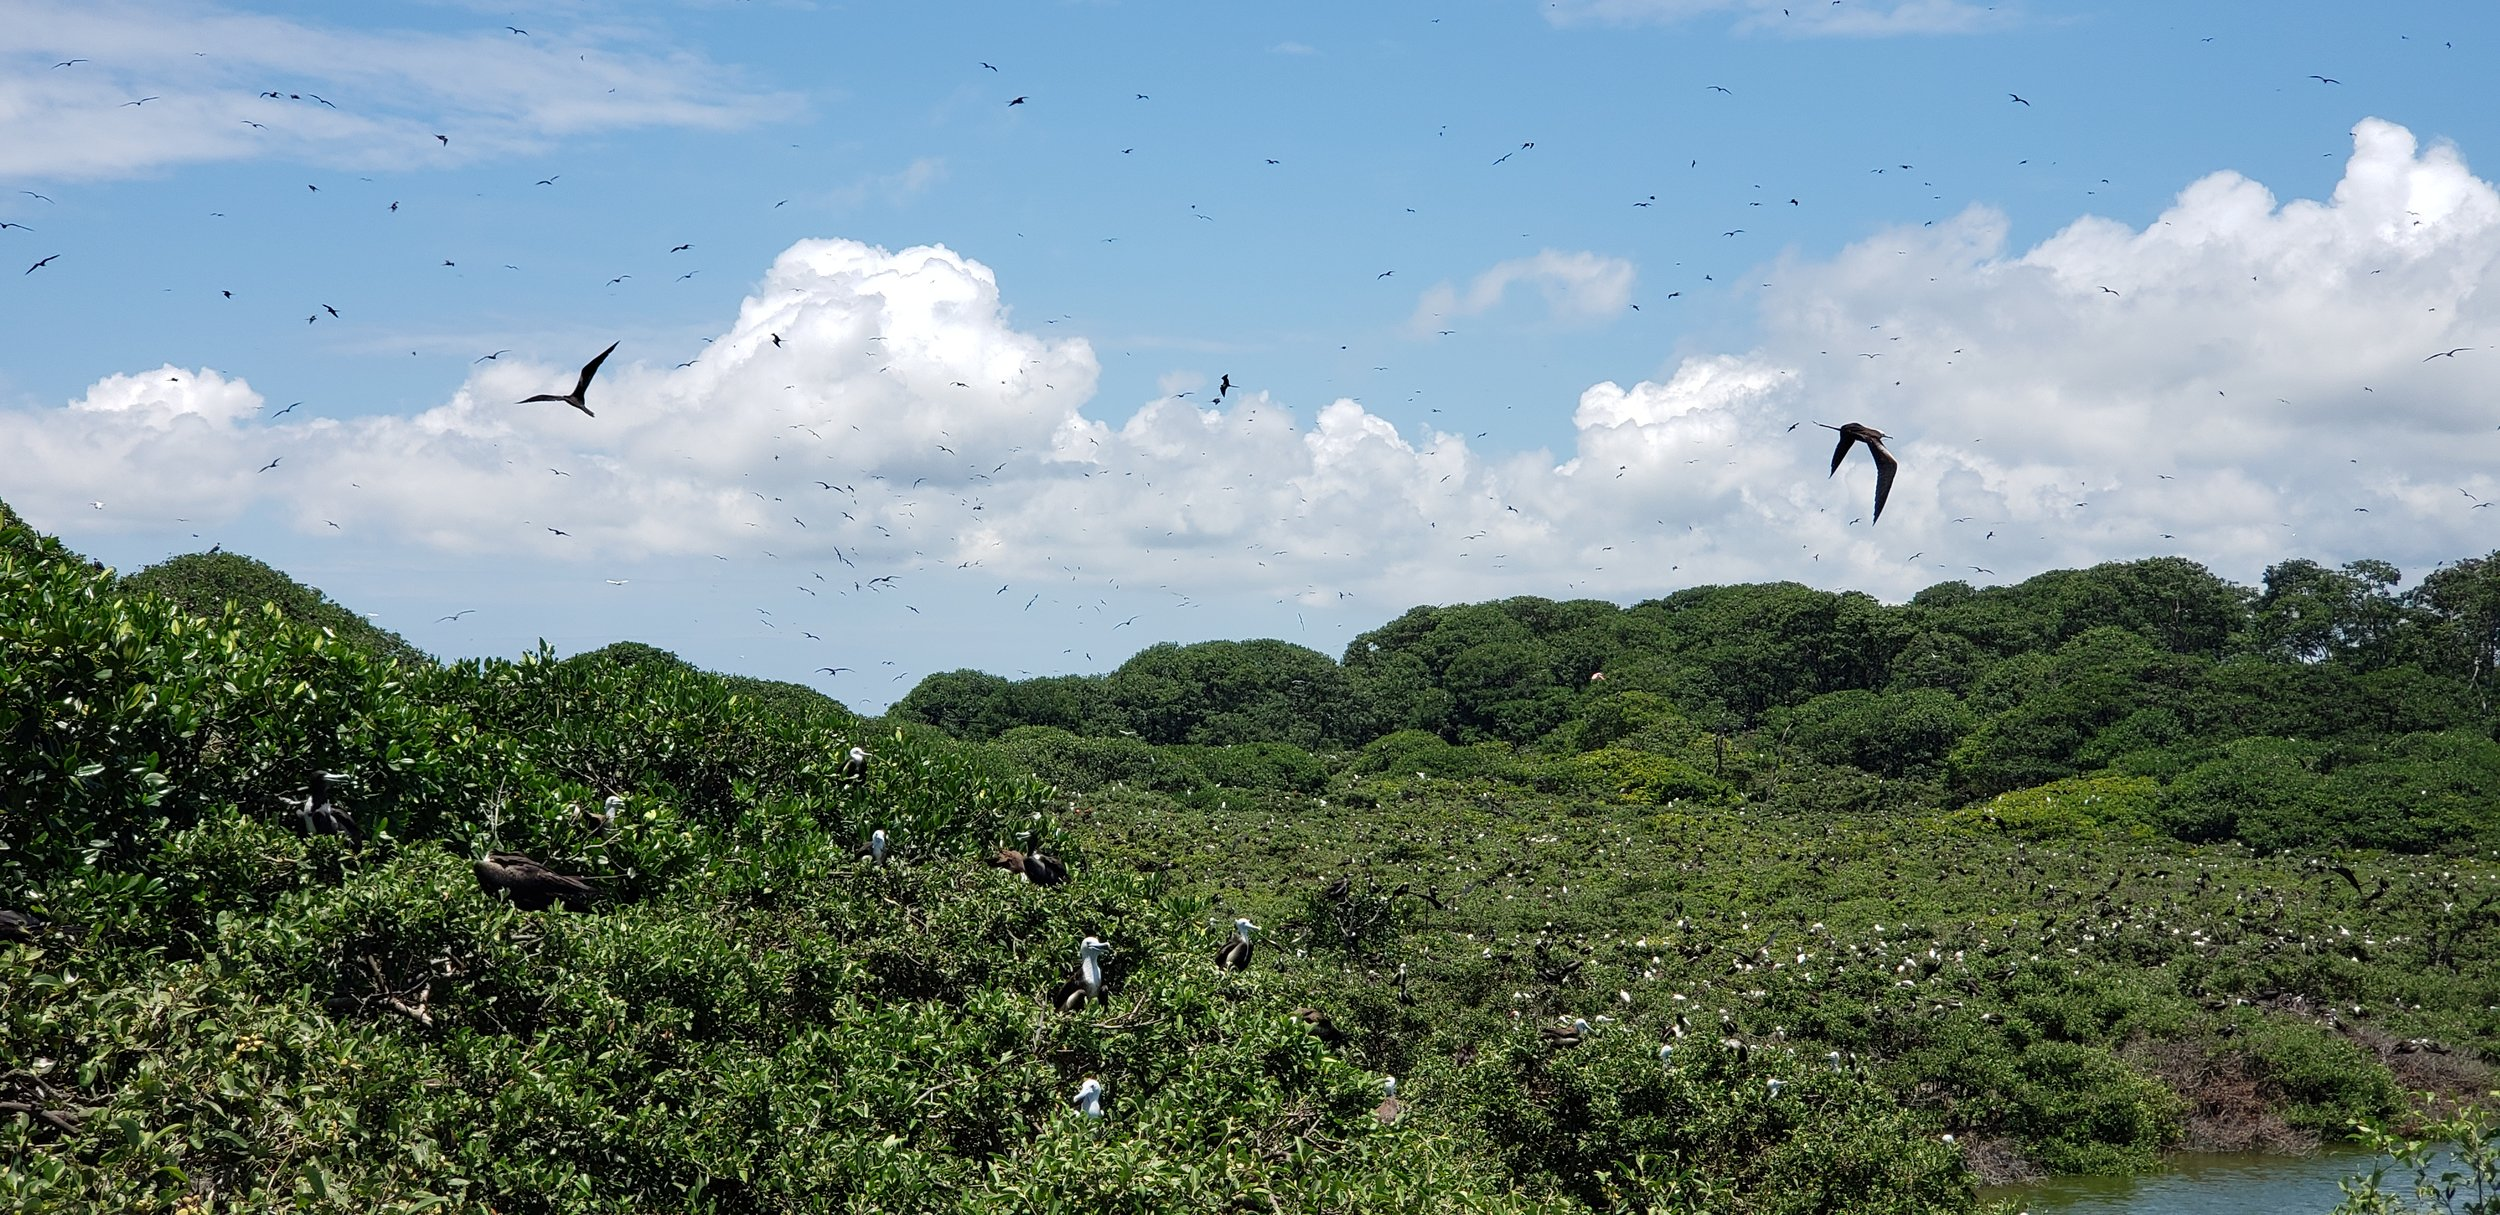 The El Morro Mangrove Wildlife Refuge is rich in biodiversity and includes a massive concentration of frigate birds.